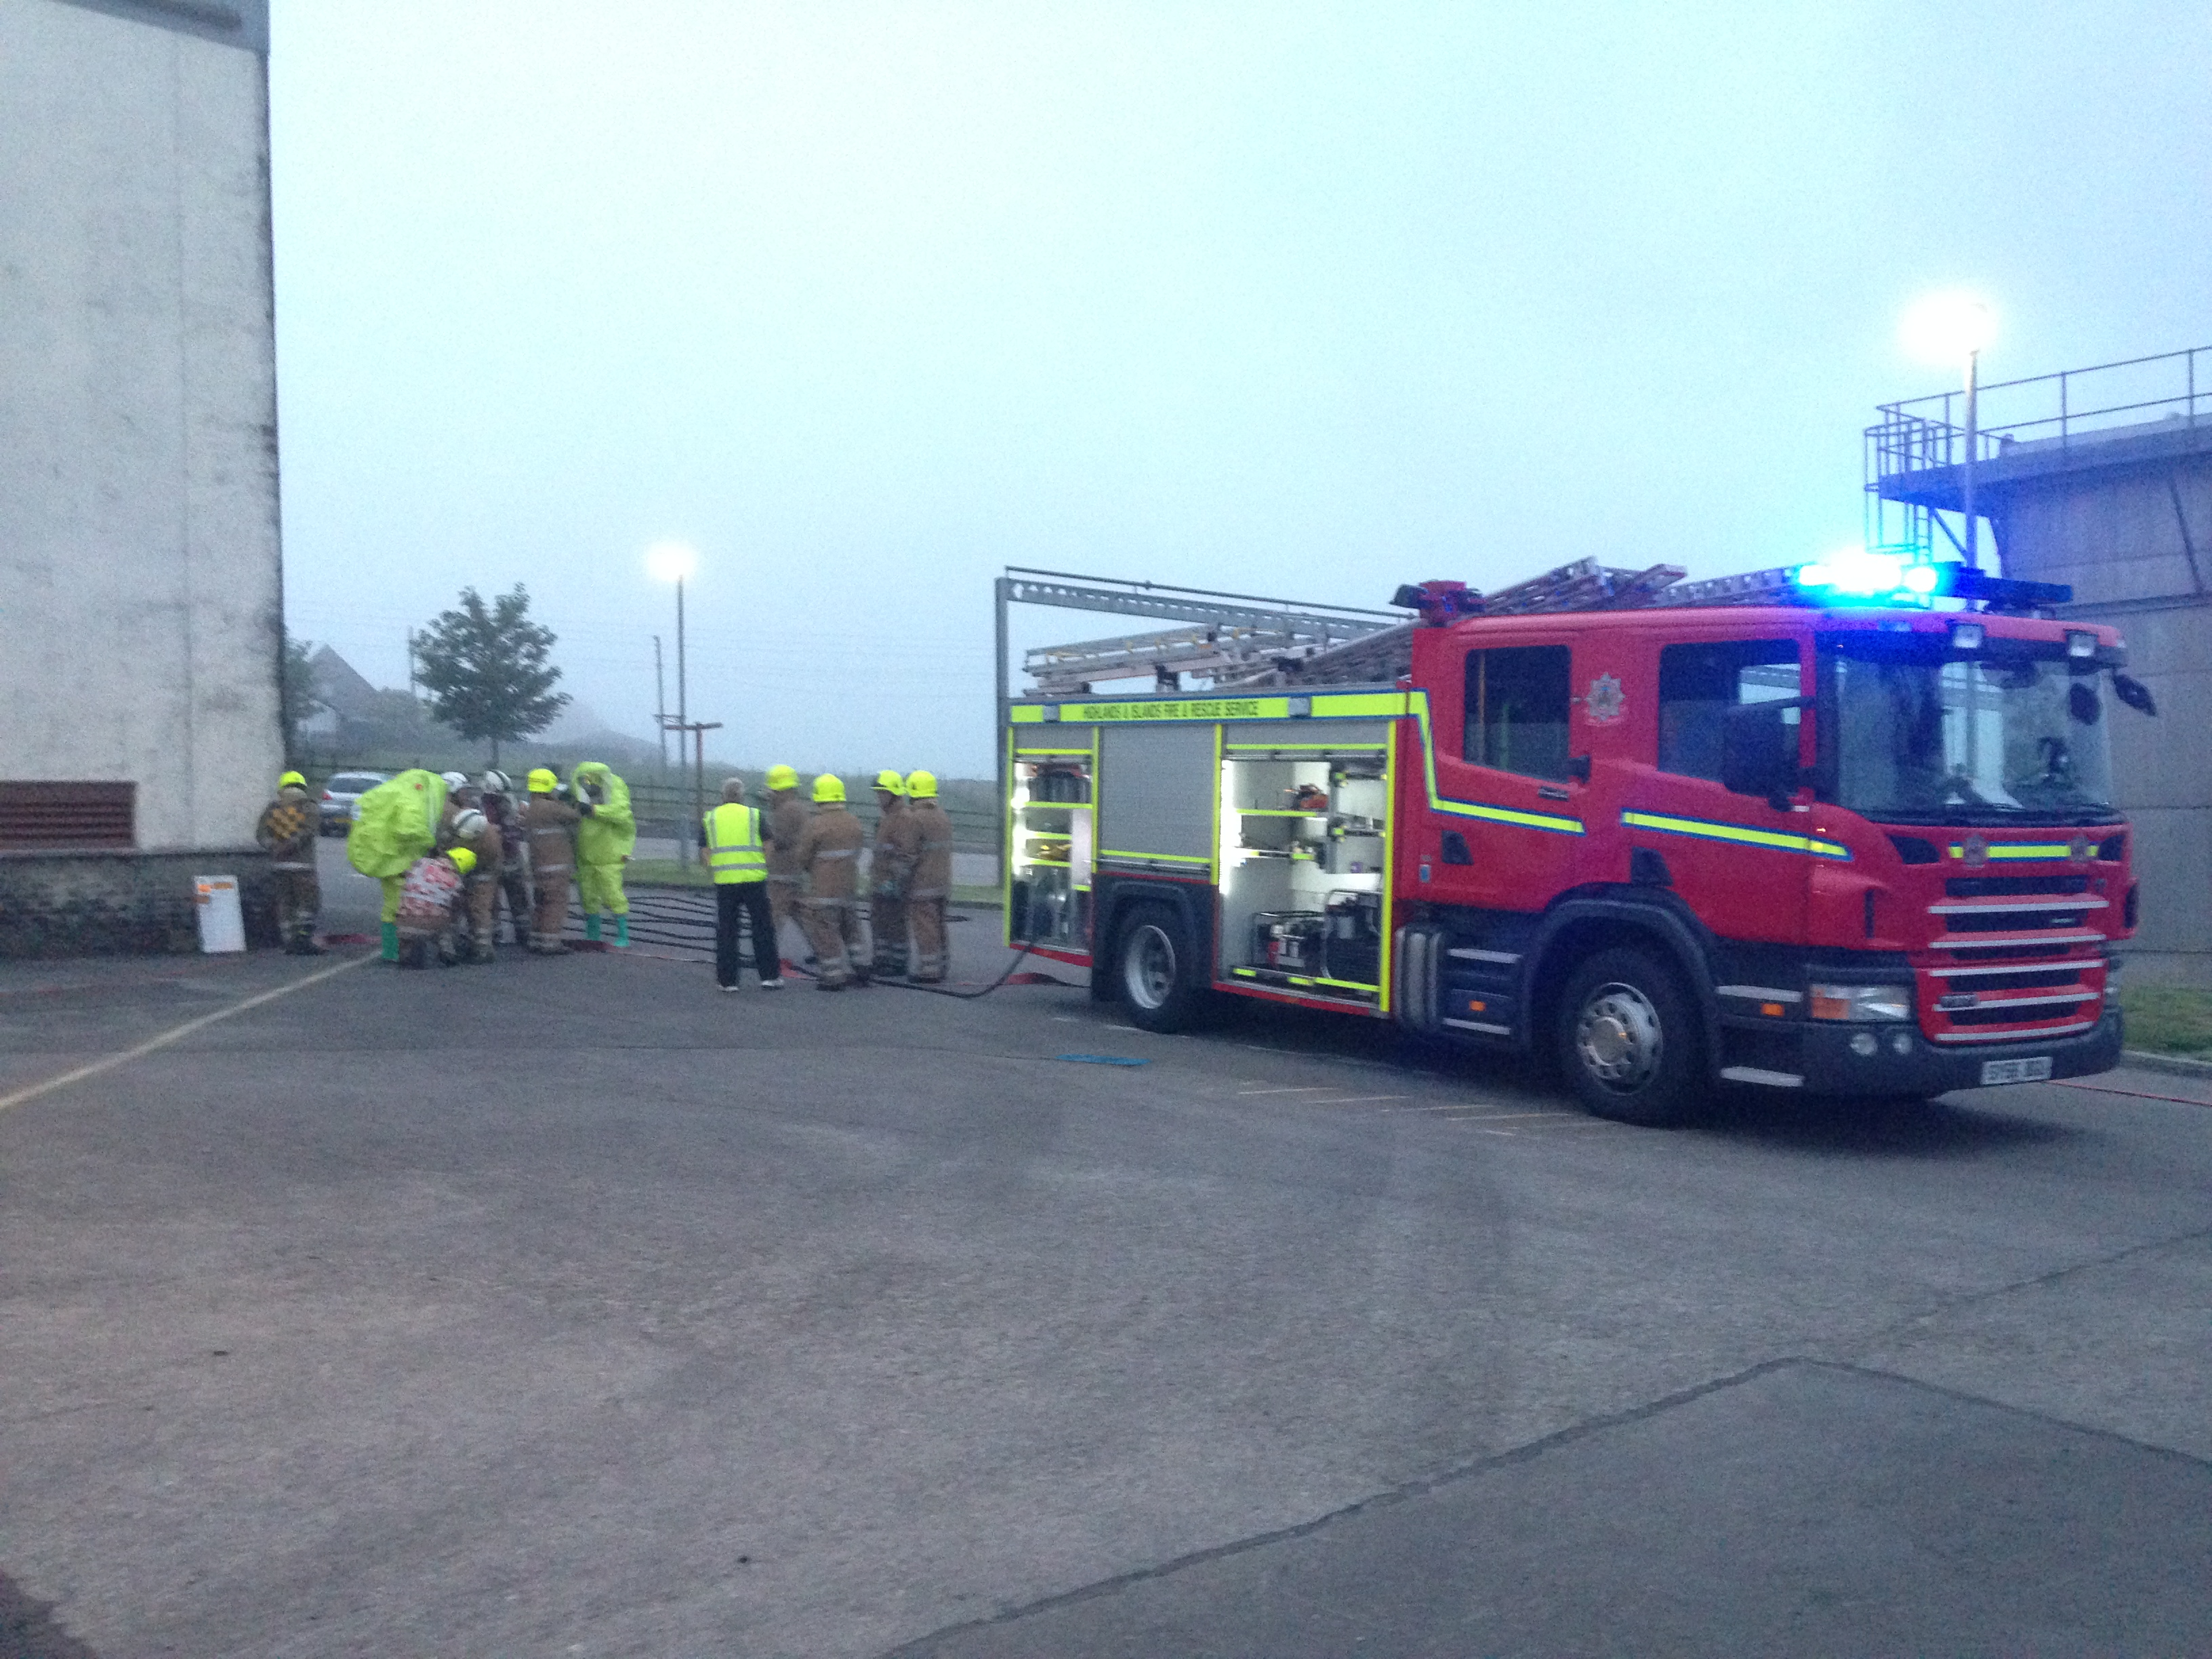 SFRS dealt with chemical incident at distillery in Brora